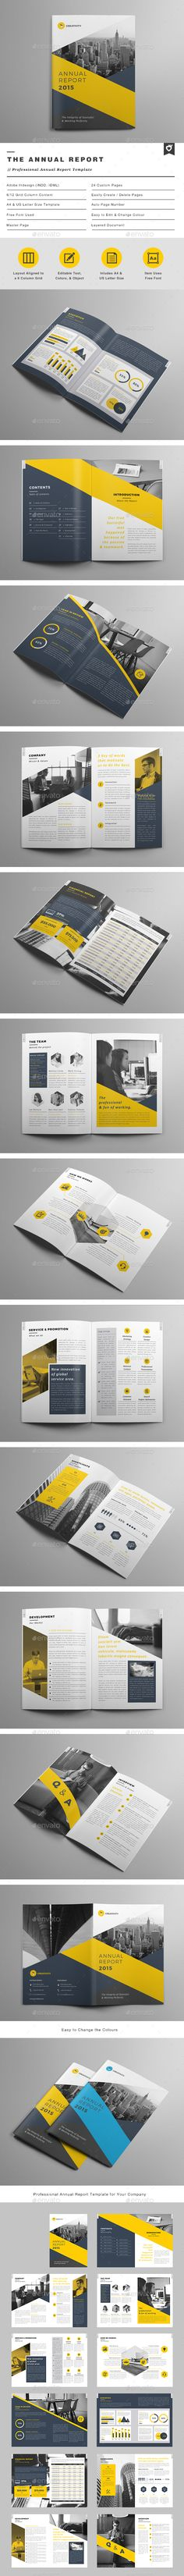 The Annual Report Template is perfect for the publication of a - annual report template design